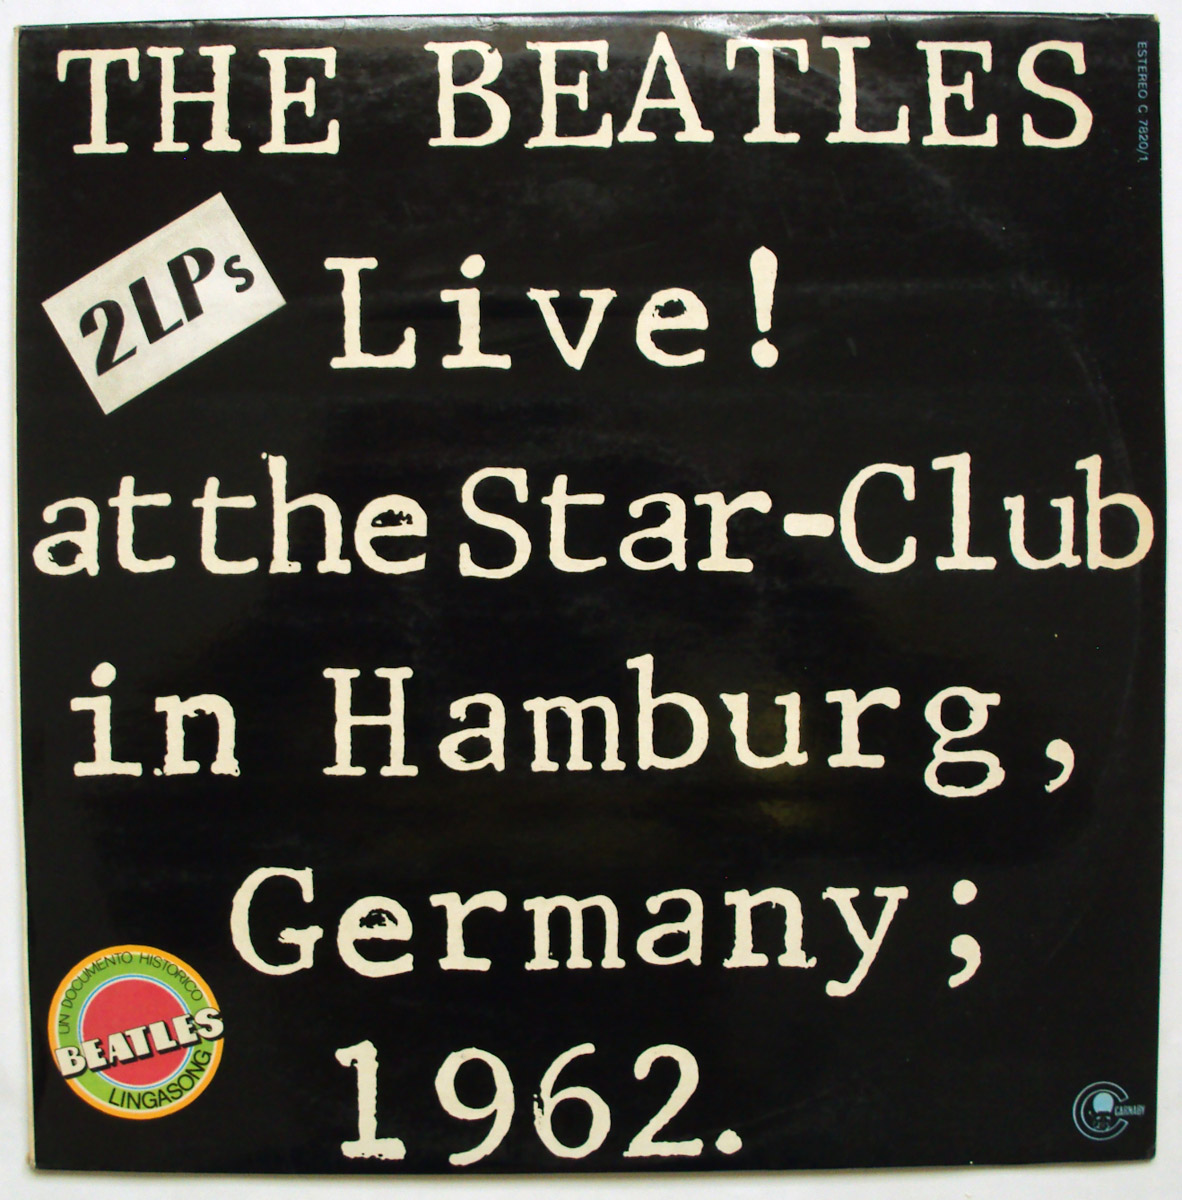 Beatles, the live! at the star-club in hamburg, Germany 1962